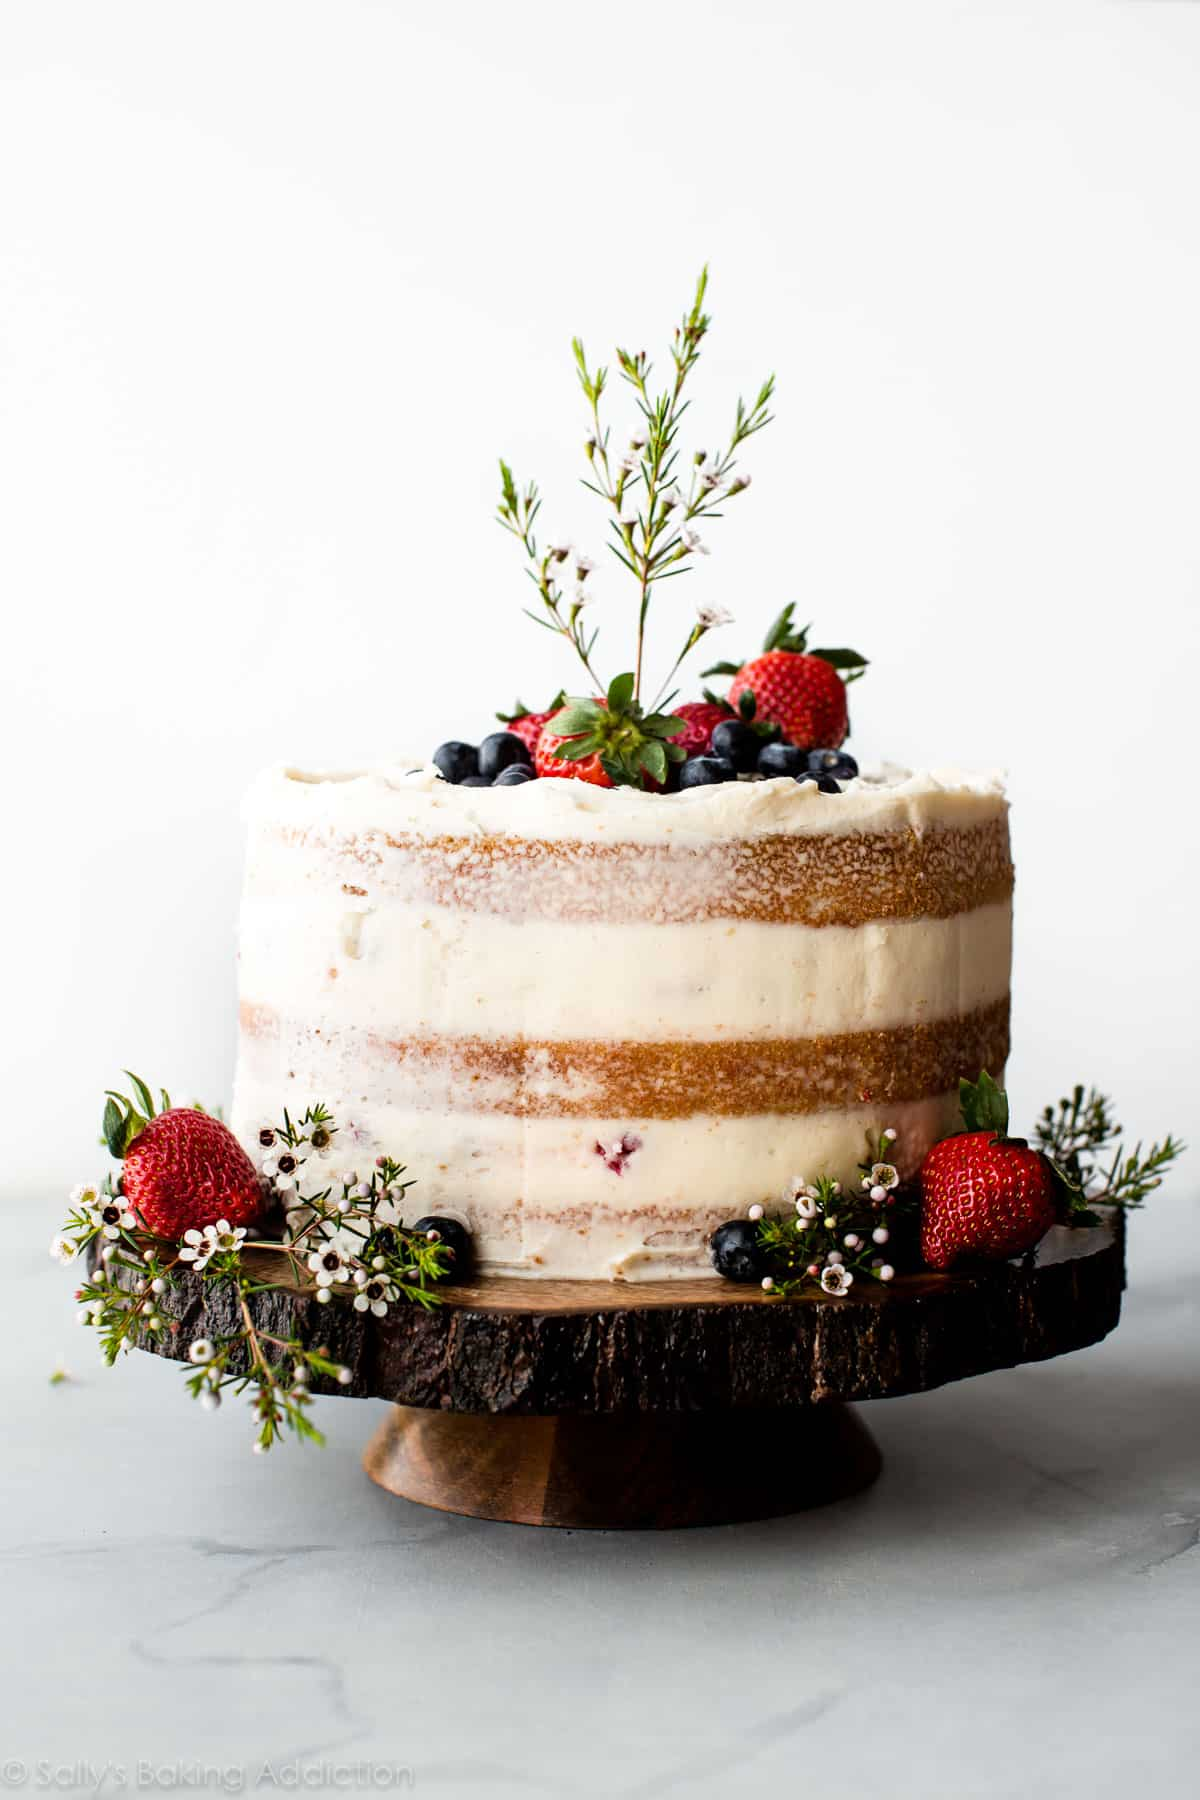 How To Make A Beautiful Naked Cake With Fresh Berries Vanilla And